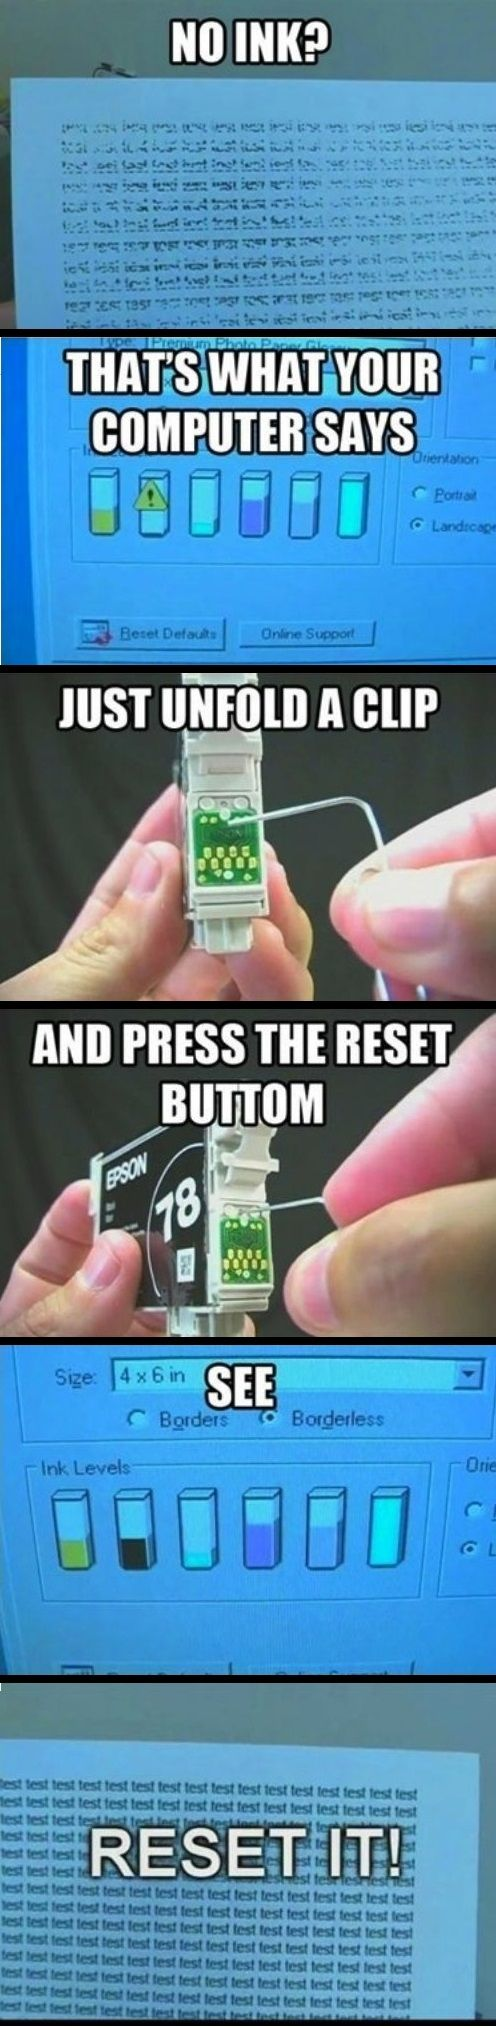 Technology: Reset Ink Cartridge to get Extra Ink